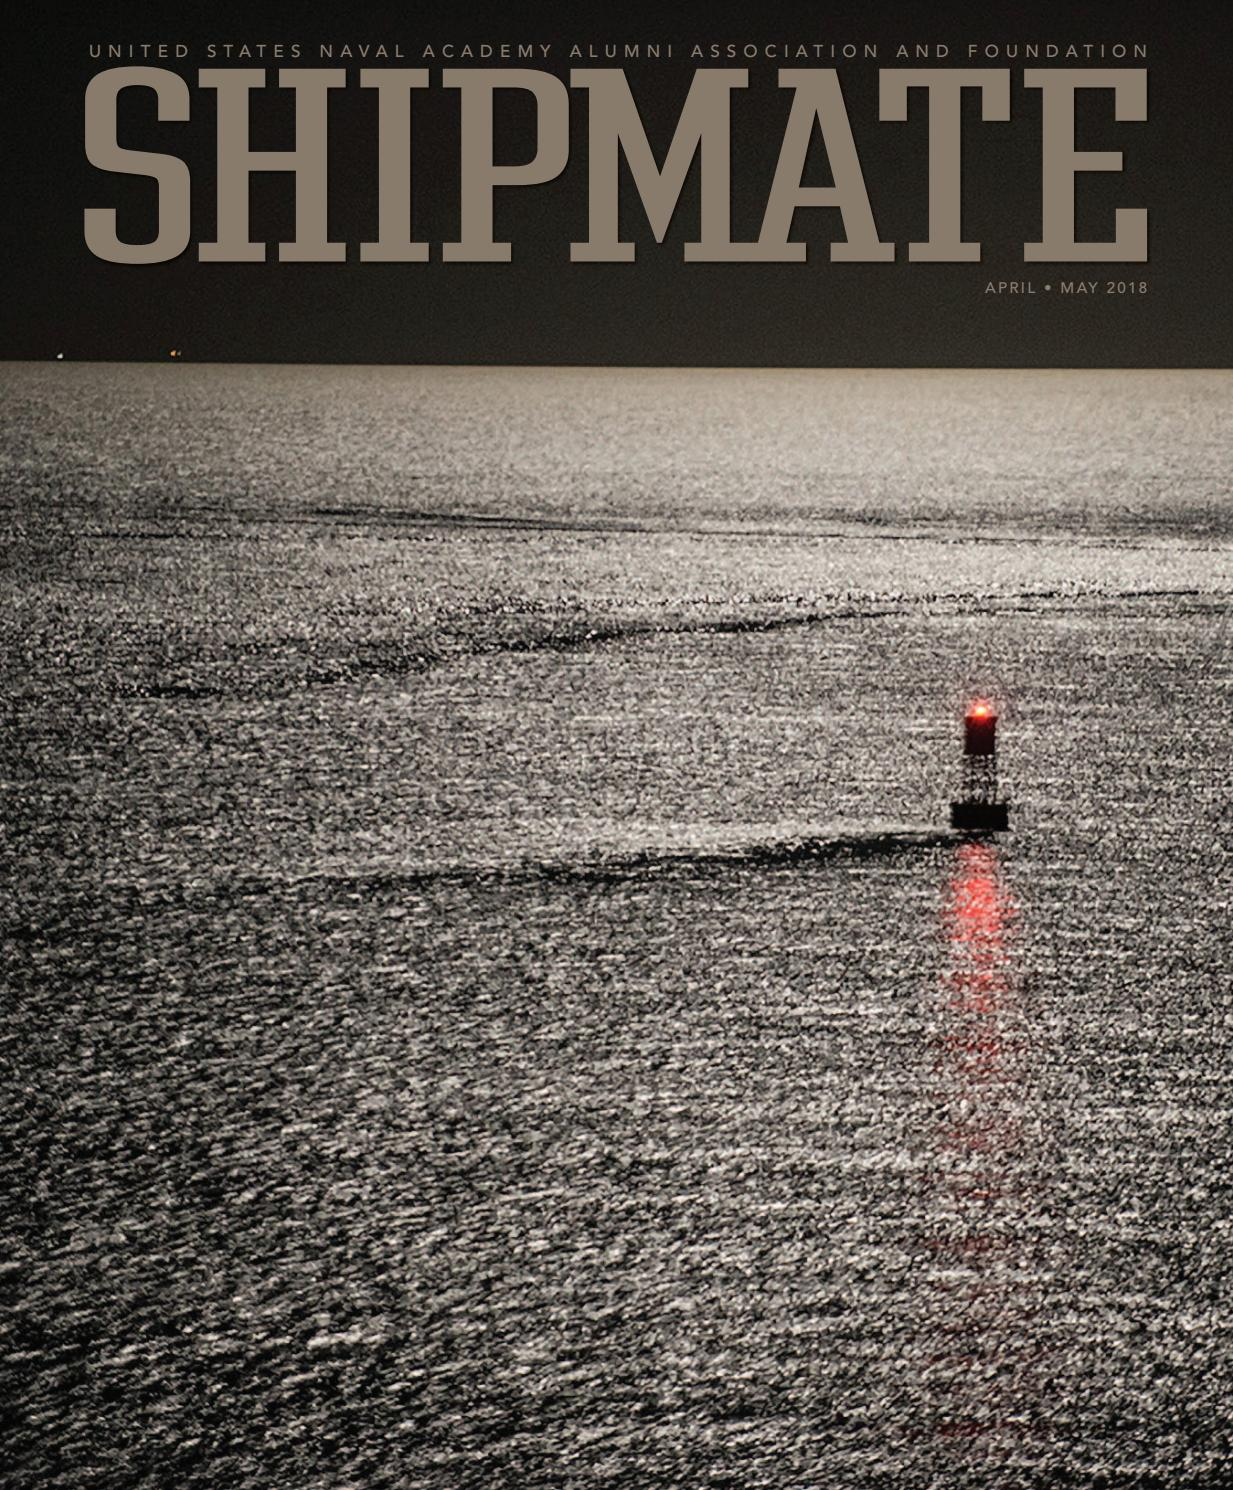 Shipmate 2018: April May by U.S. Naval Academy Alumni